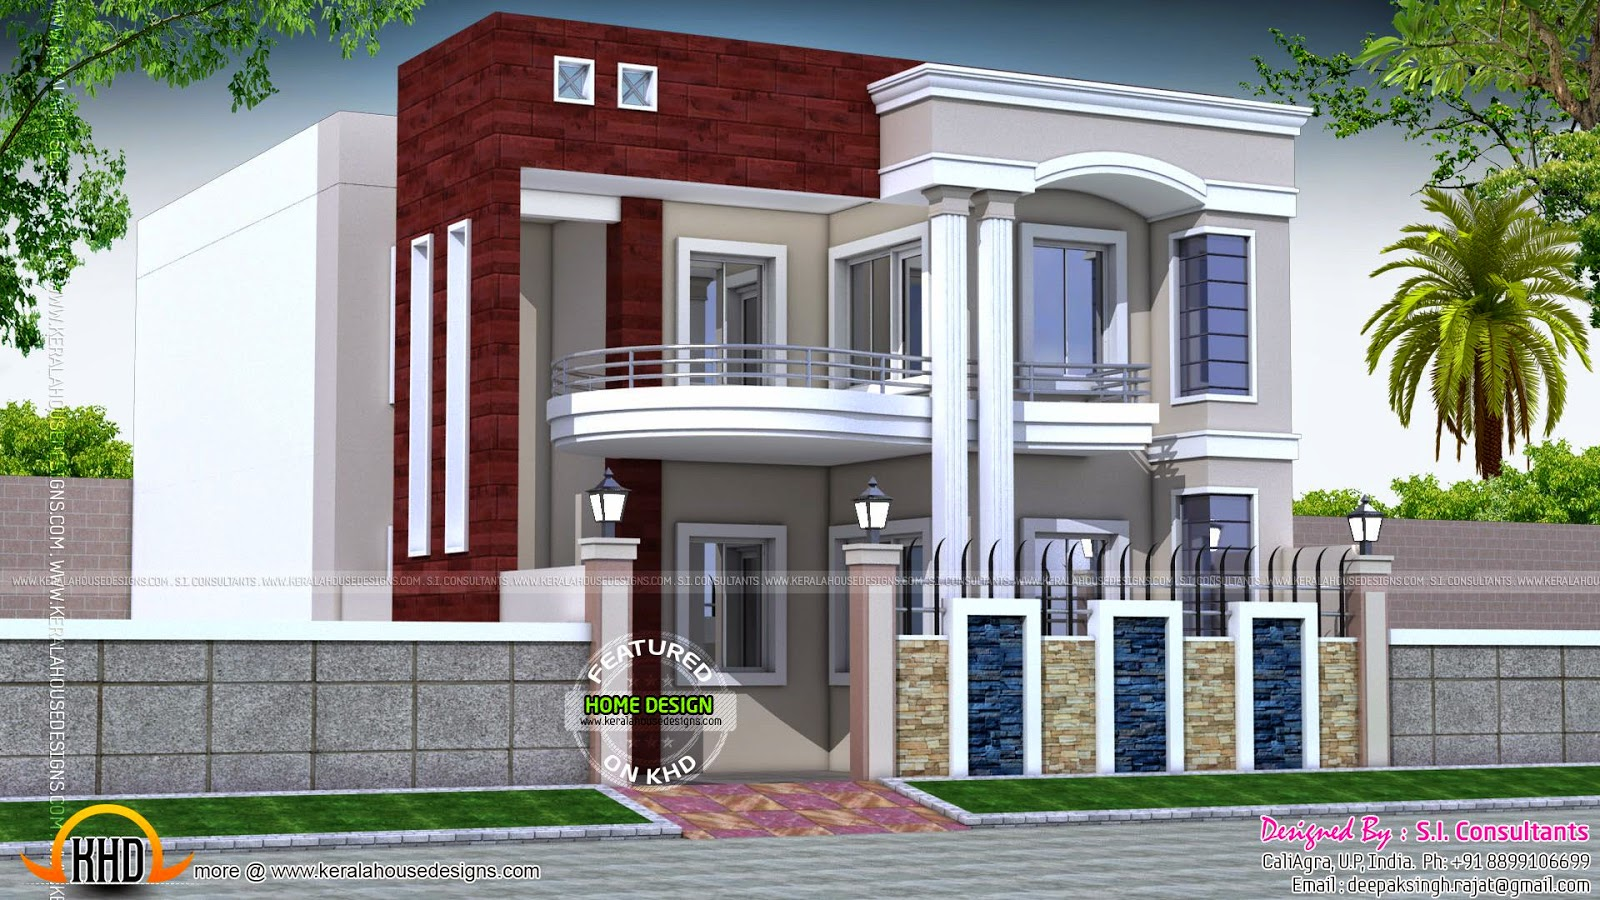 House design in north india kerala home design and floor for Home plan design india